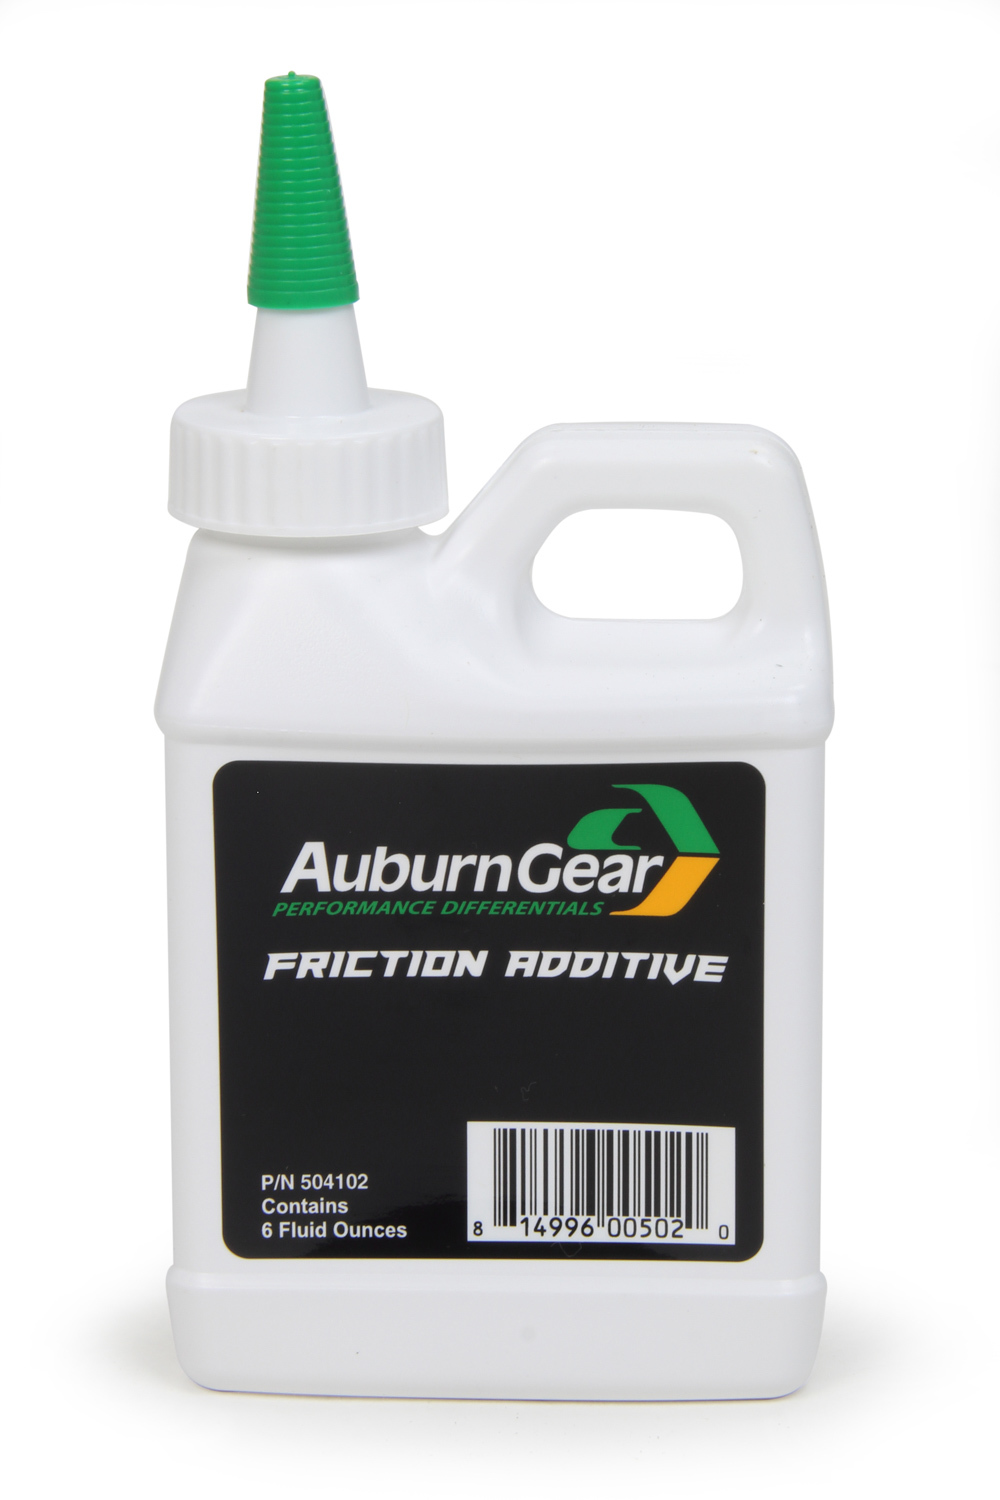 Auburn Gear 504102 Friction Modifier Additive, Limited Slip Differential, 6.00 oz Bottle, Each